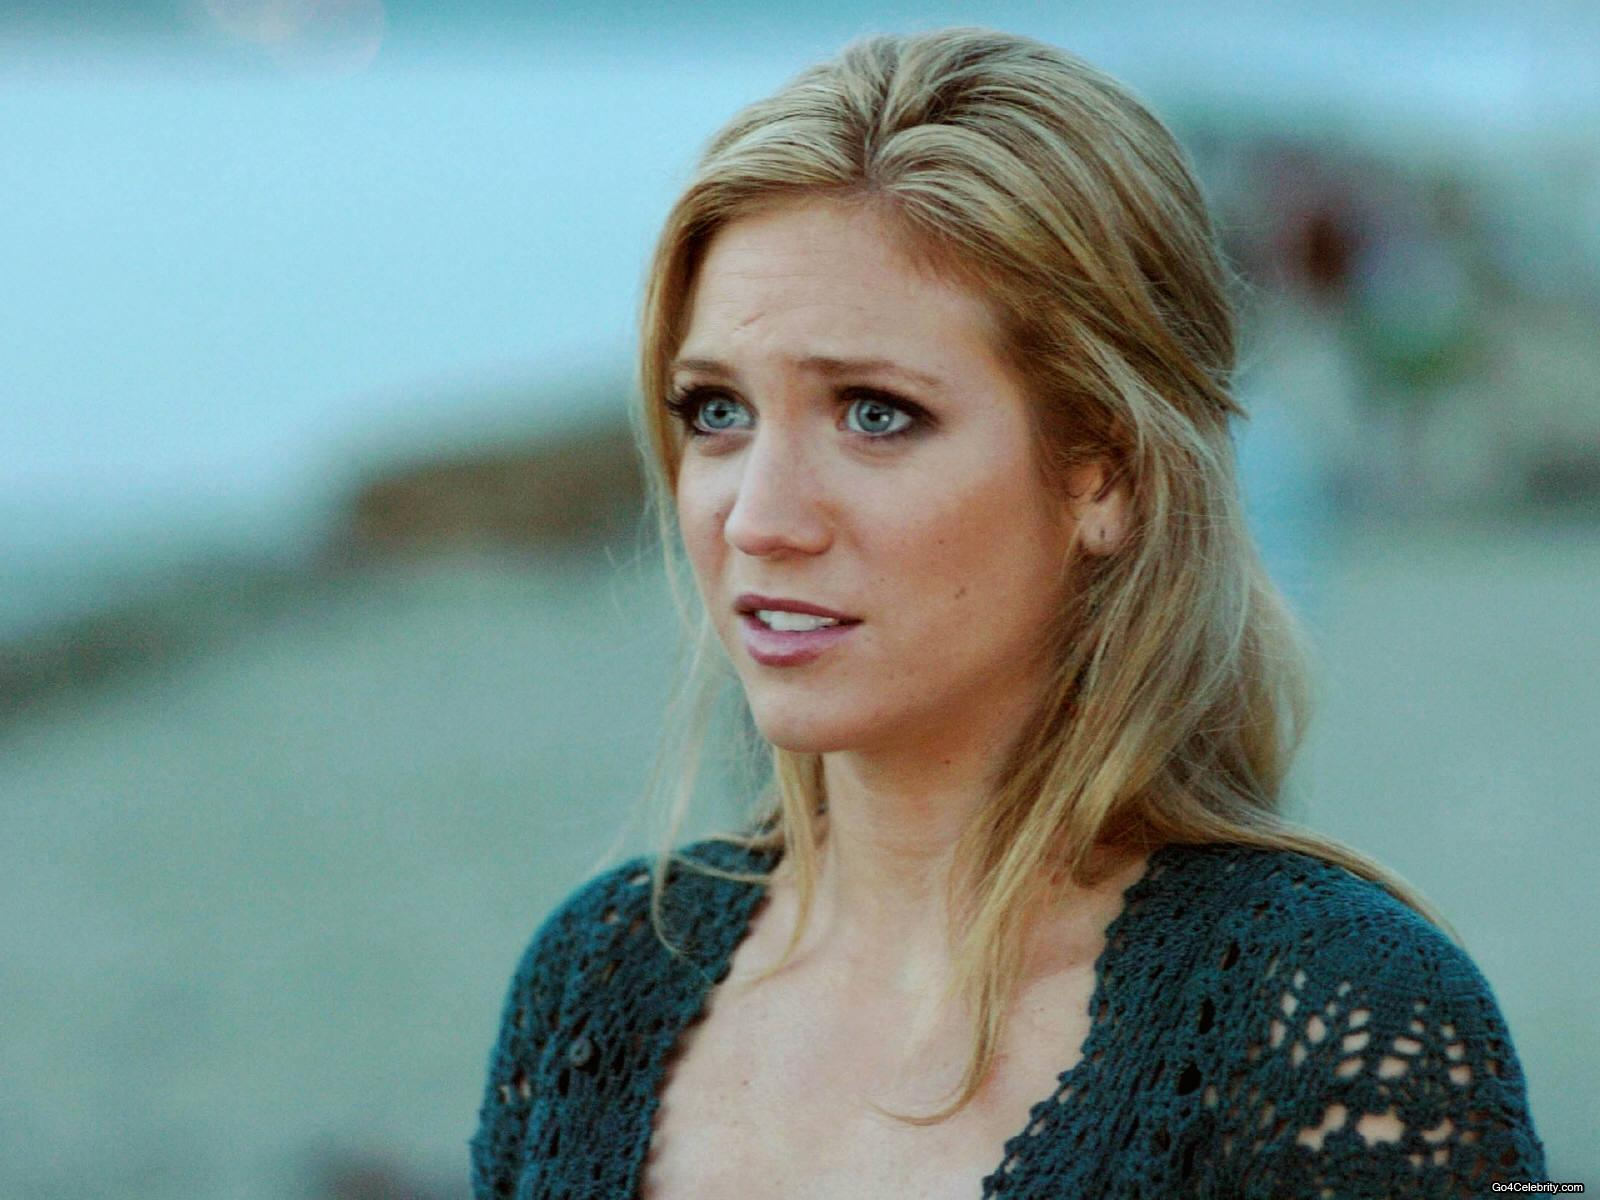 1600x1200 - Brittany Snow Wallpapers 30